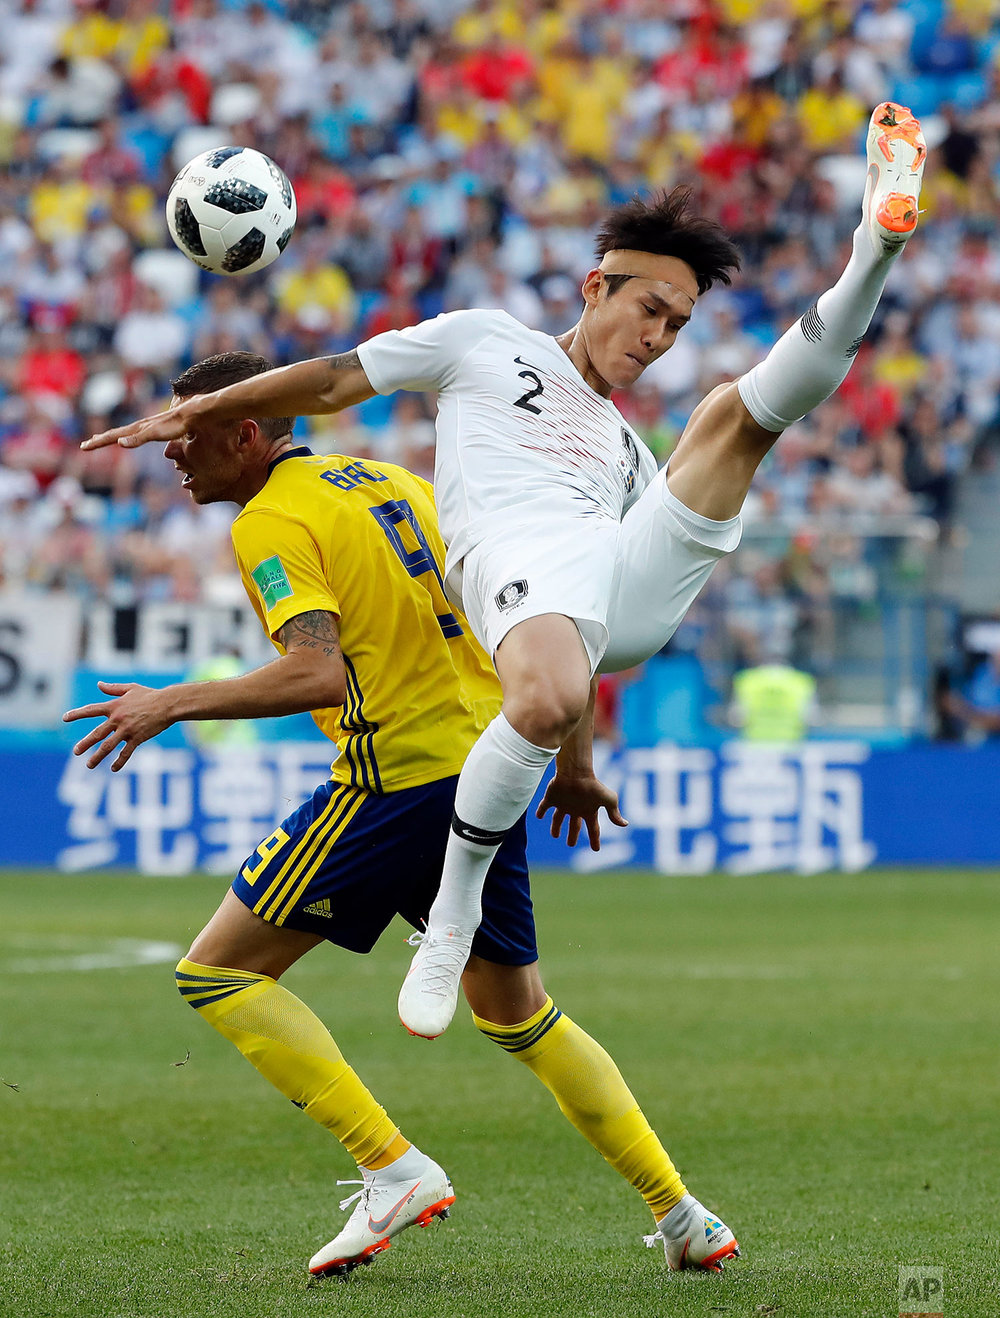 South Korea's Lee Yong is challenged by Sweden's Marcus Berg during the group F match between Sweden and South Korea at the 2018 soccer World Cup in the Nizhny Novgorod stadium in Nizhny Novgorod, Russia, Monday, June 18, 2018. (AP Photo/Pavel Golovkin)